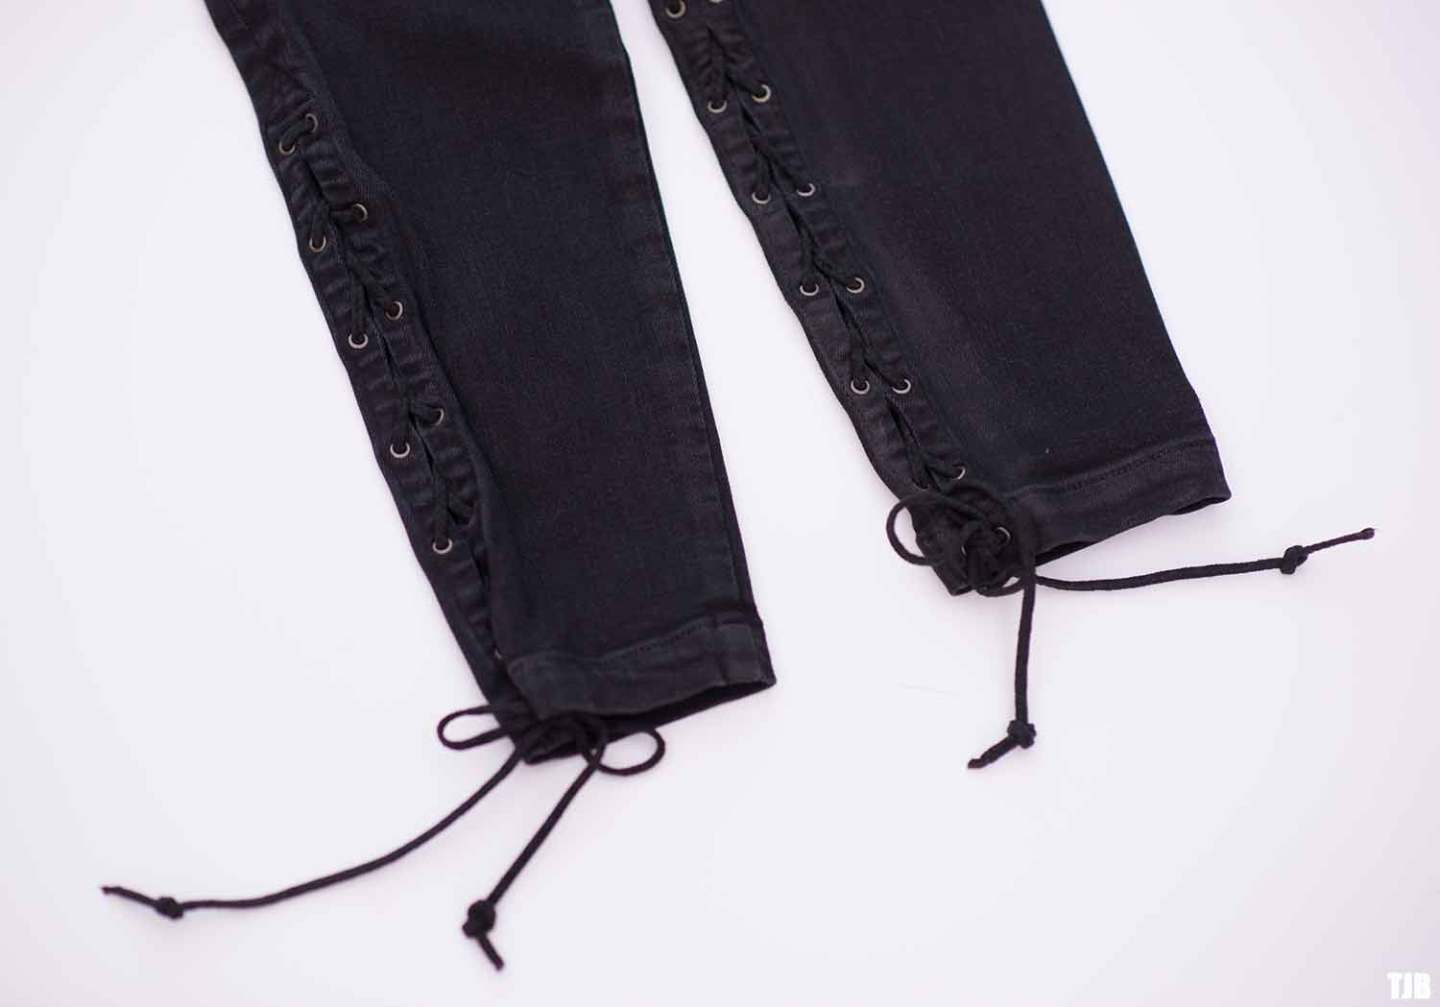 hudson-nix-skinny-lace-up-jeans-review-8